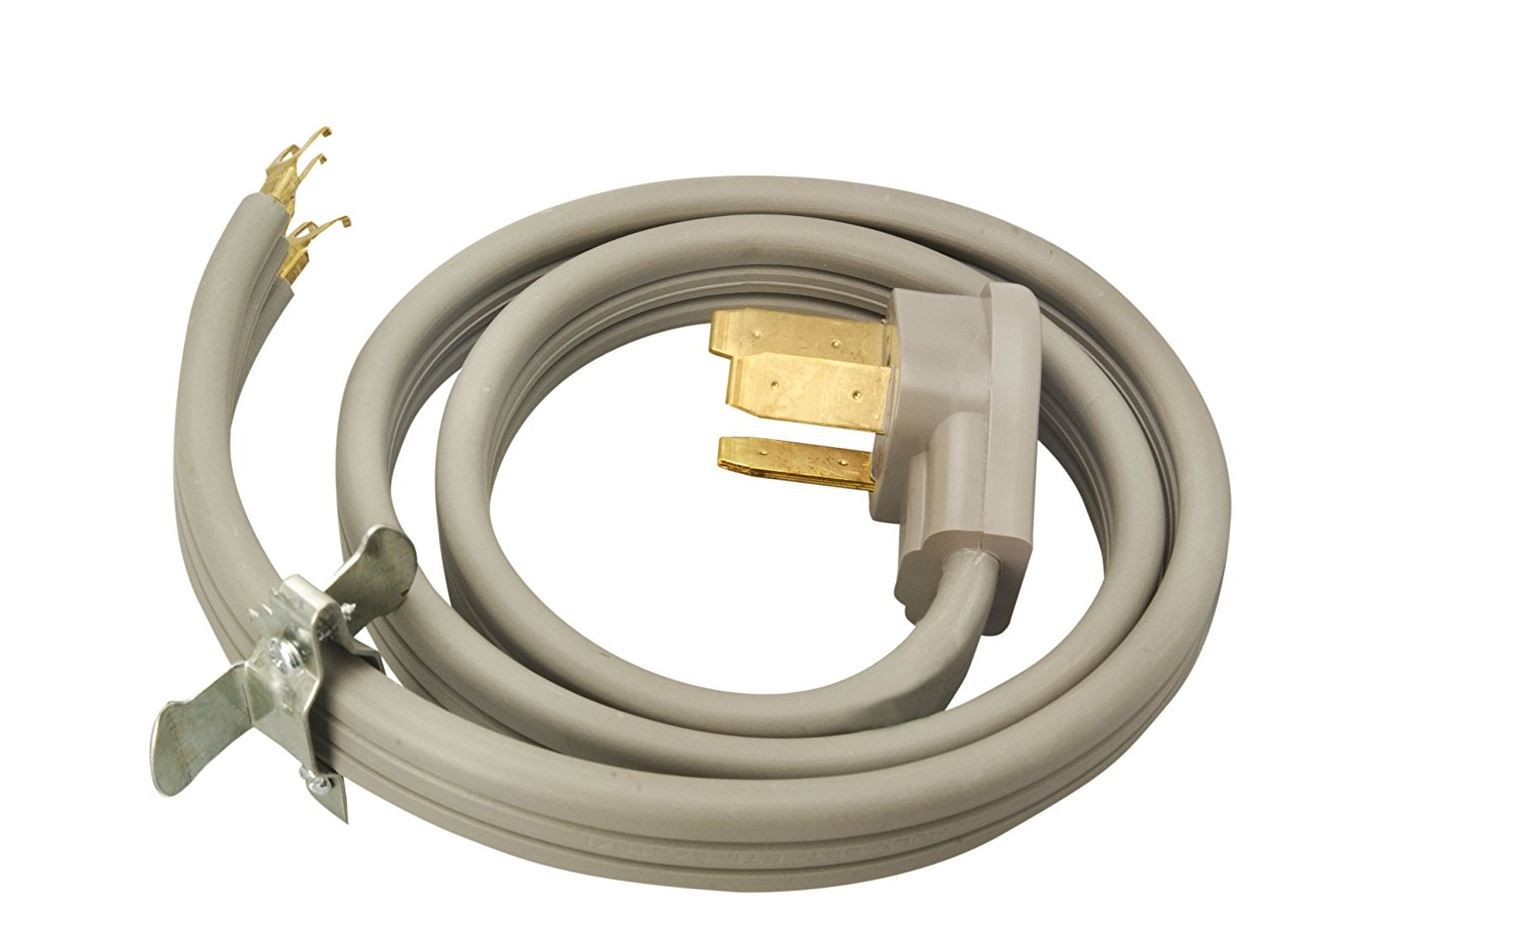 wiring plug to dryer 2004 jeep wrangler radio diagram convert 4 prong cord 3 outlet